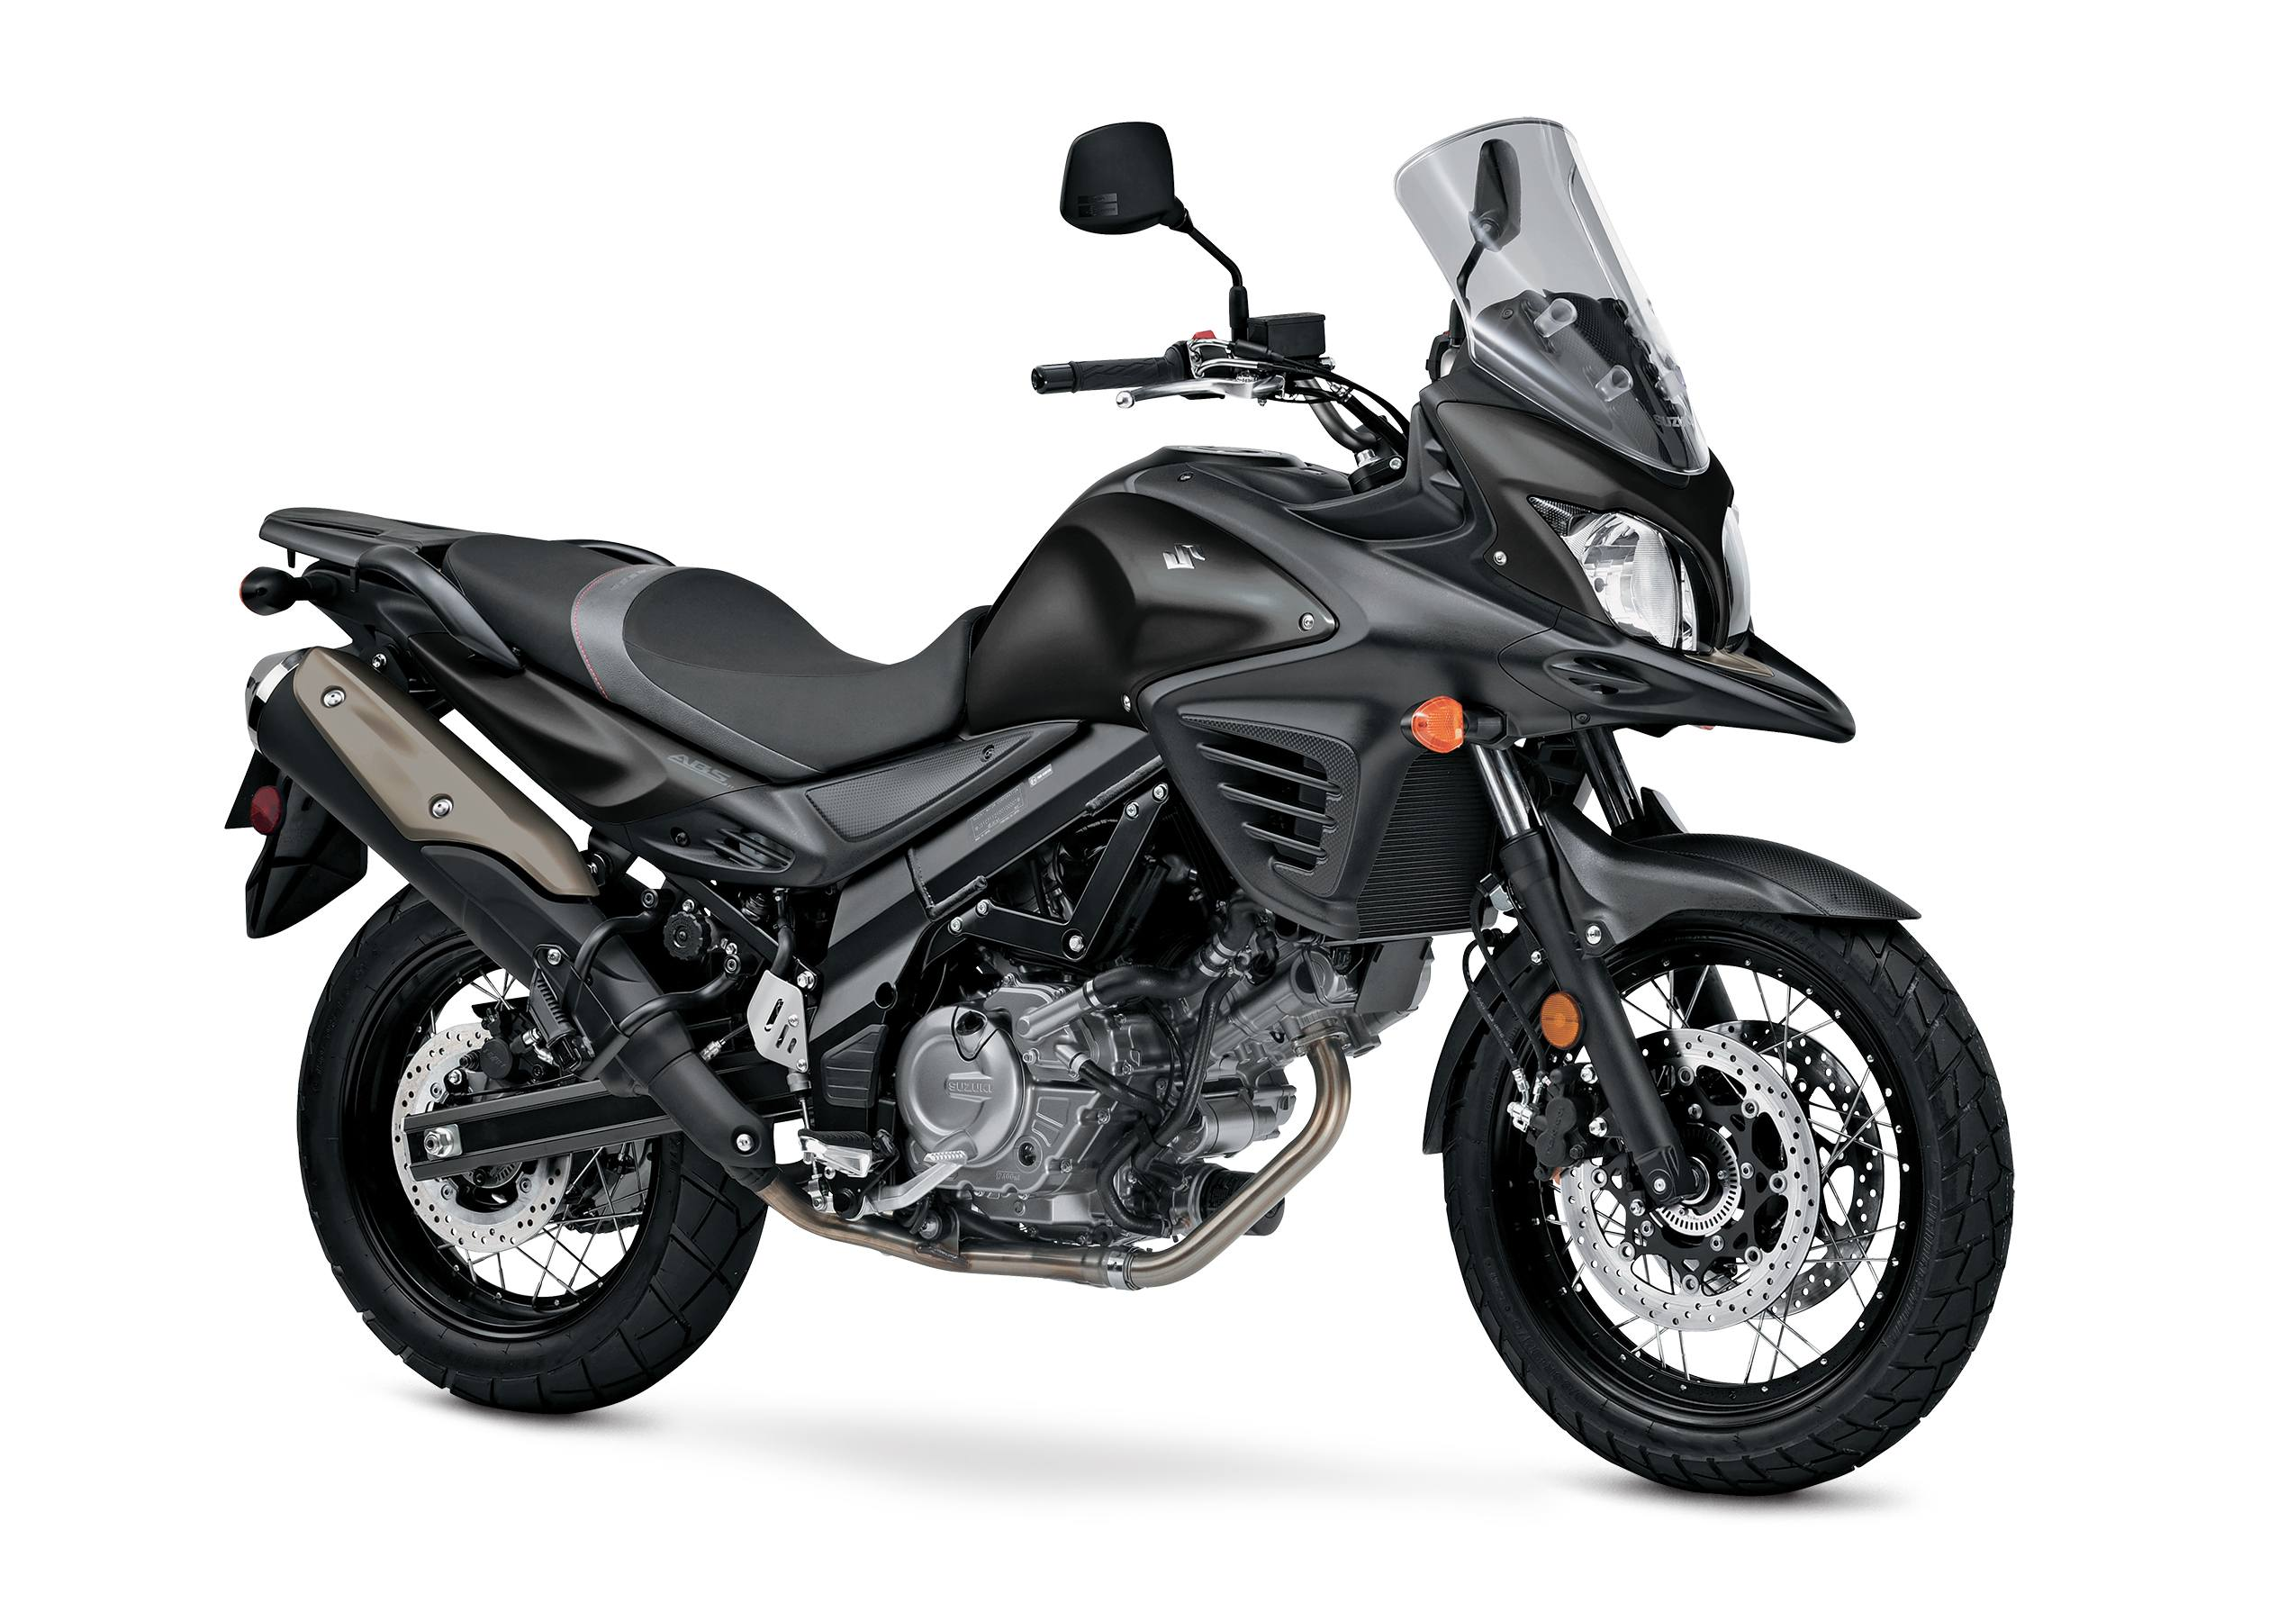 2016 Suzuki V-Strom 650 XT ABS in Brea, California